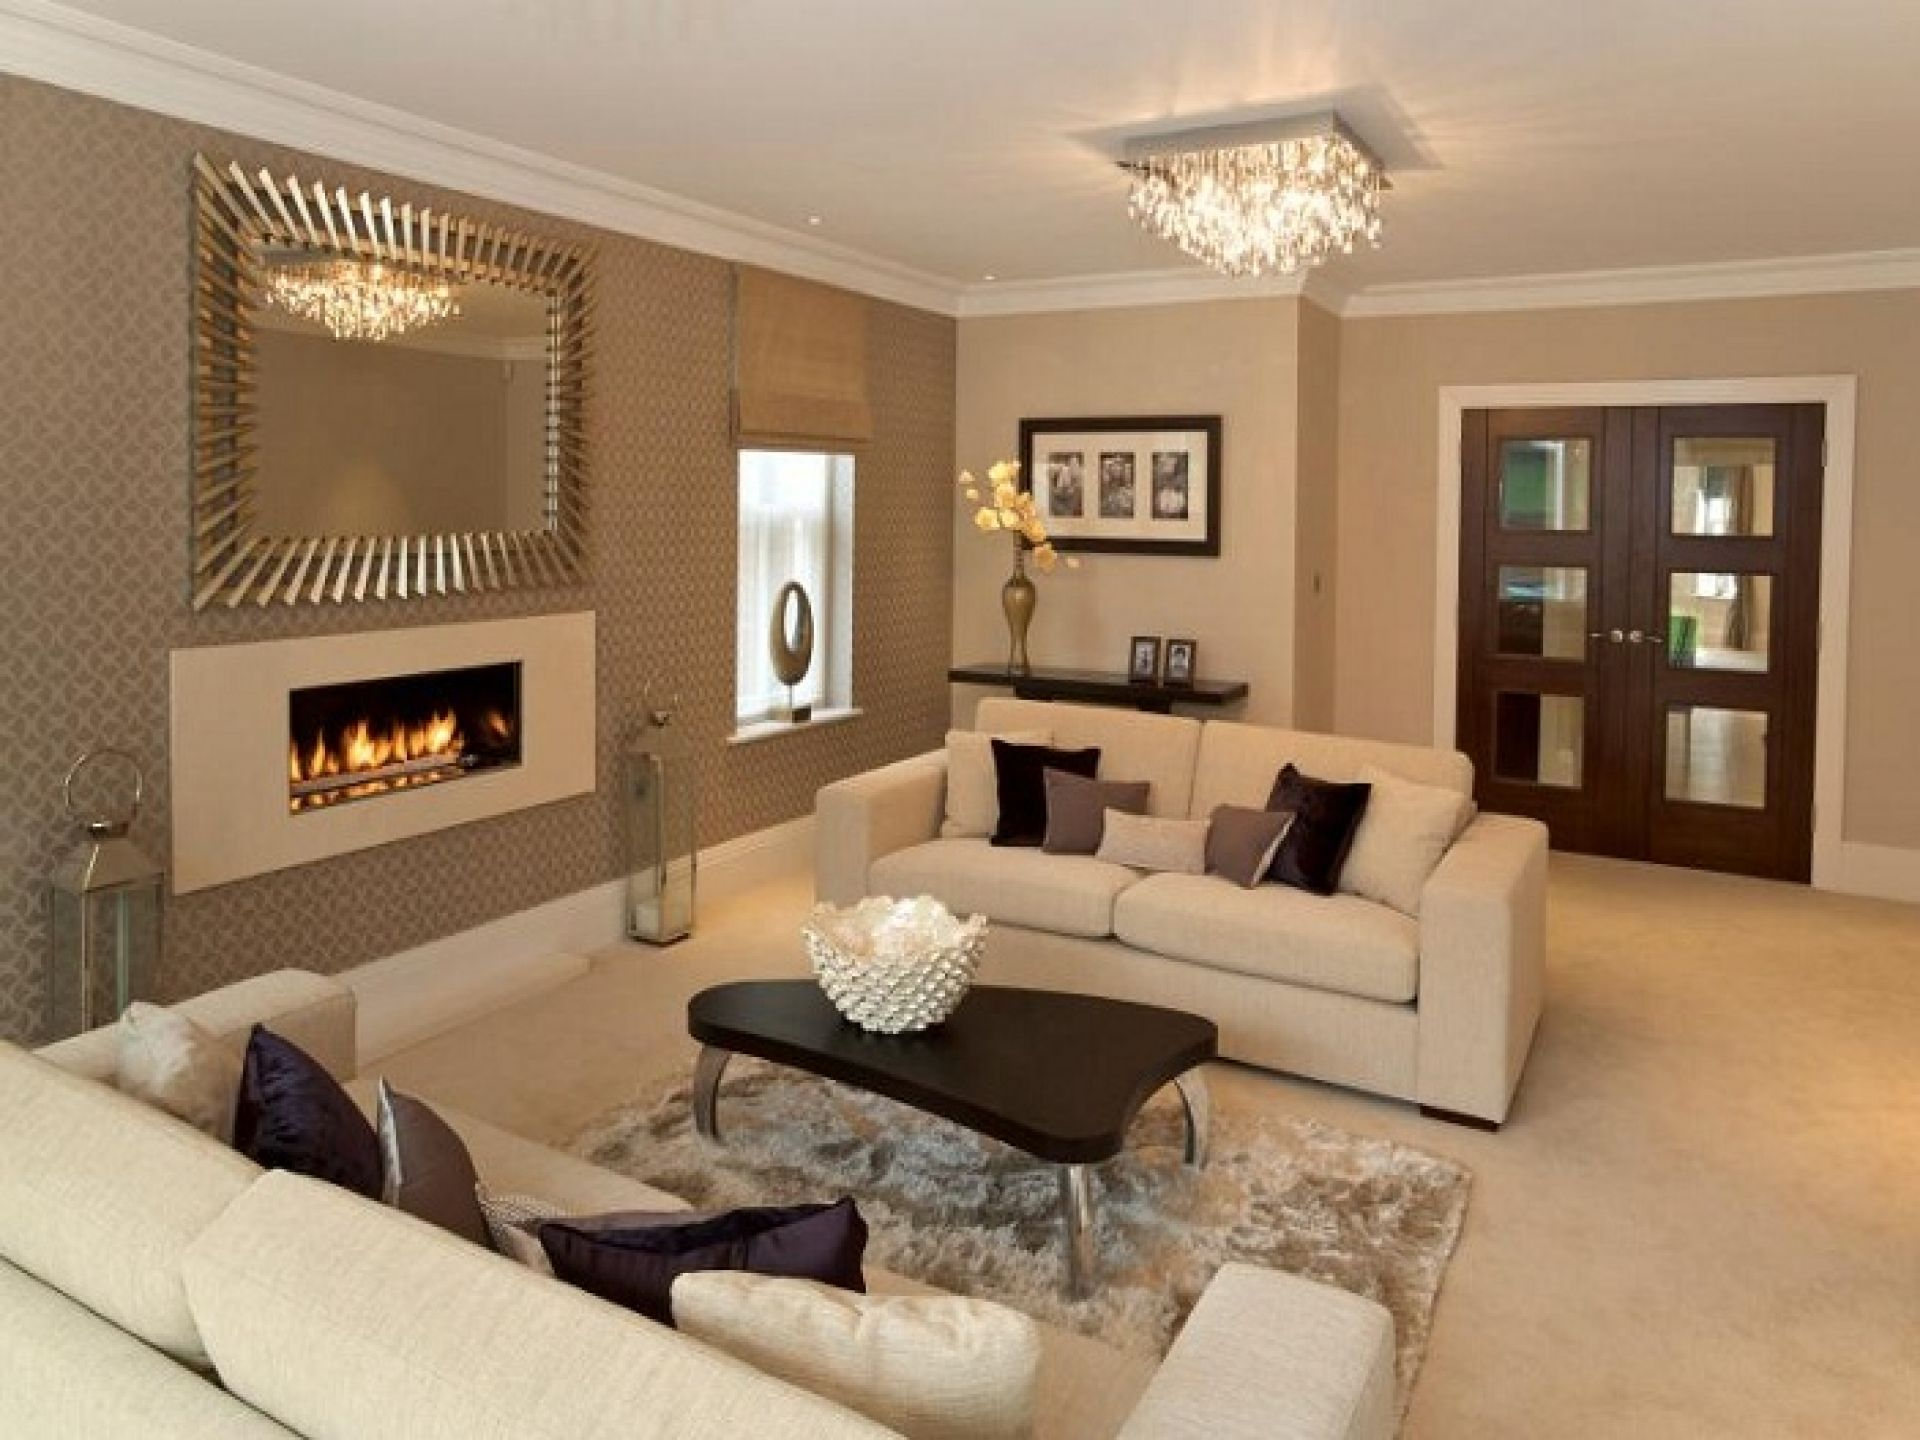 15 exclusive living room ideas for the perfect home   brown paint